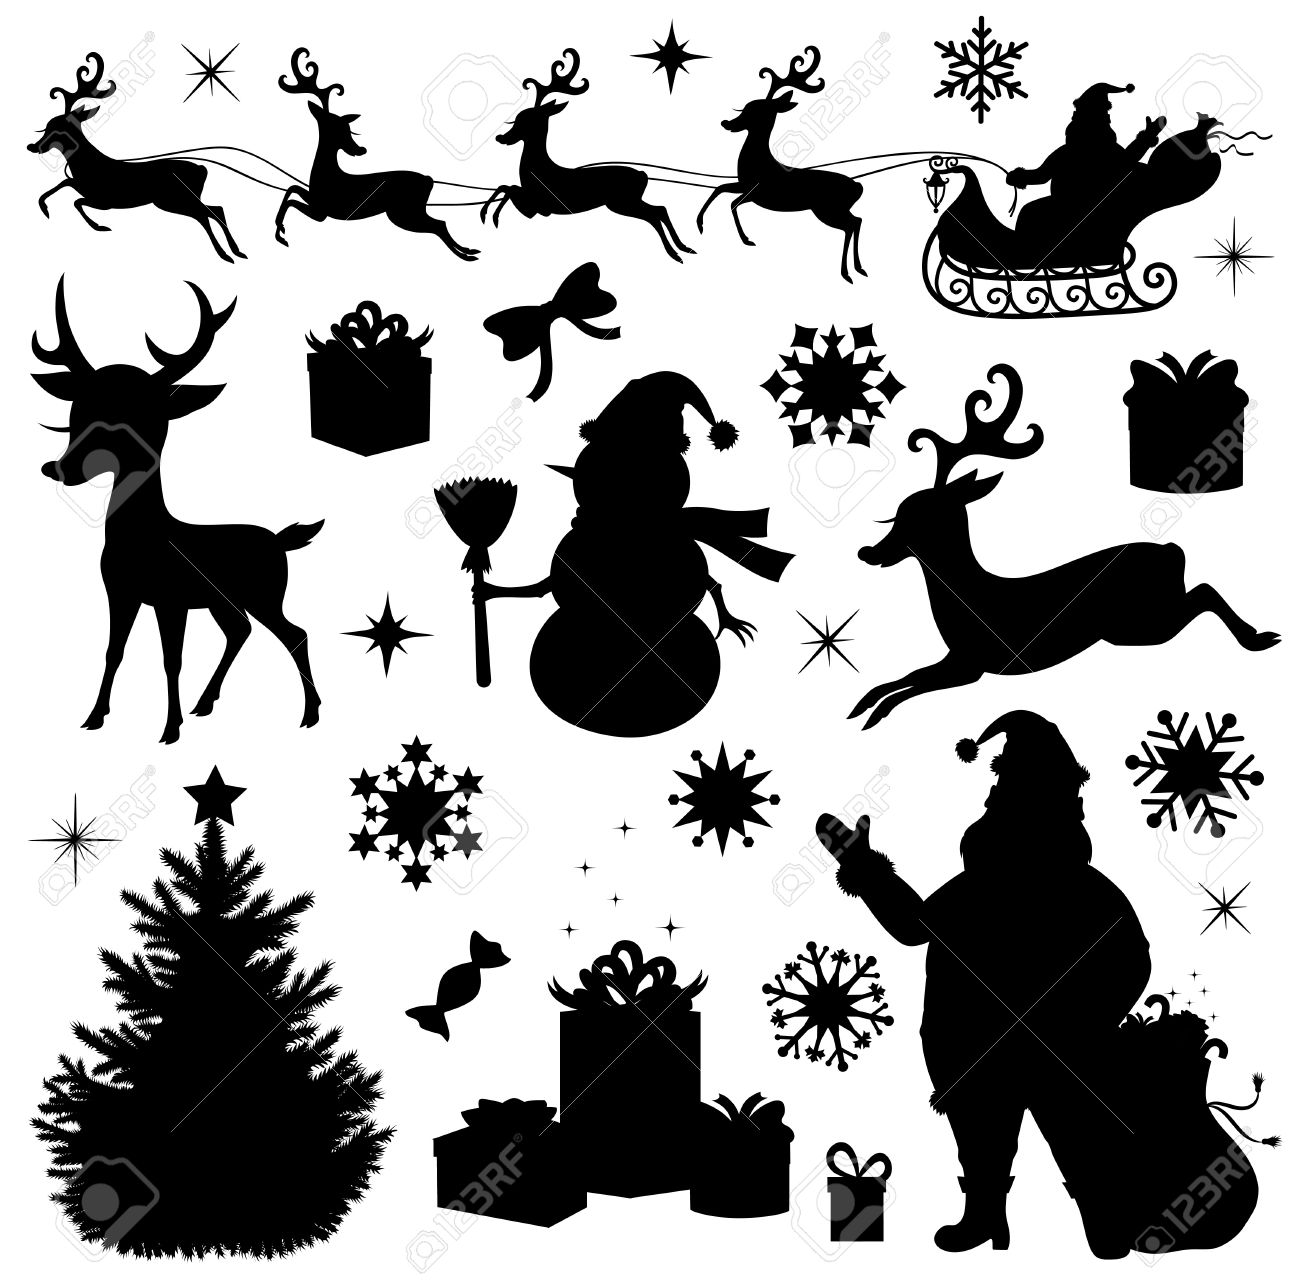 Christmas Silhouette.Collection Of A Christmas Silhouettes